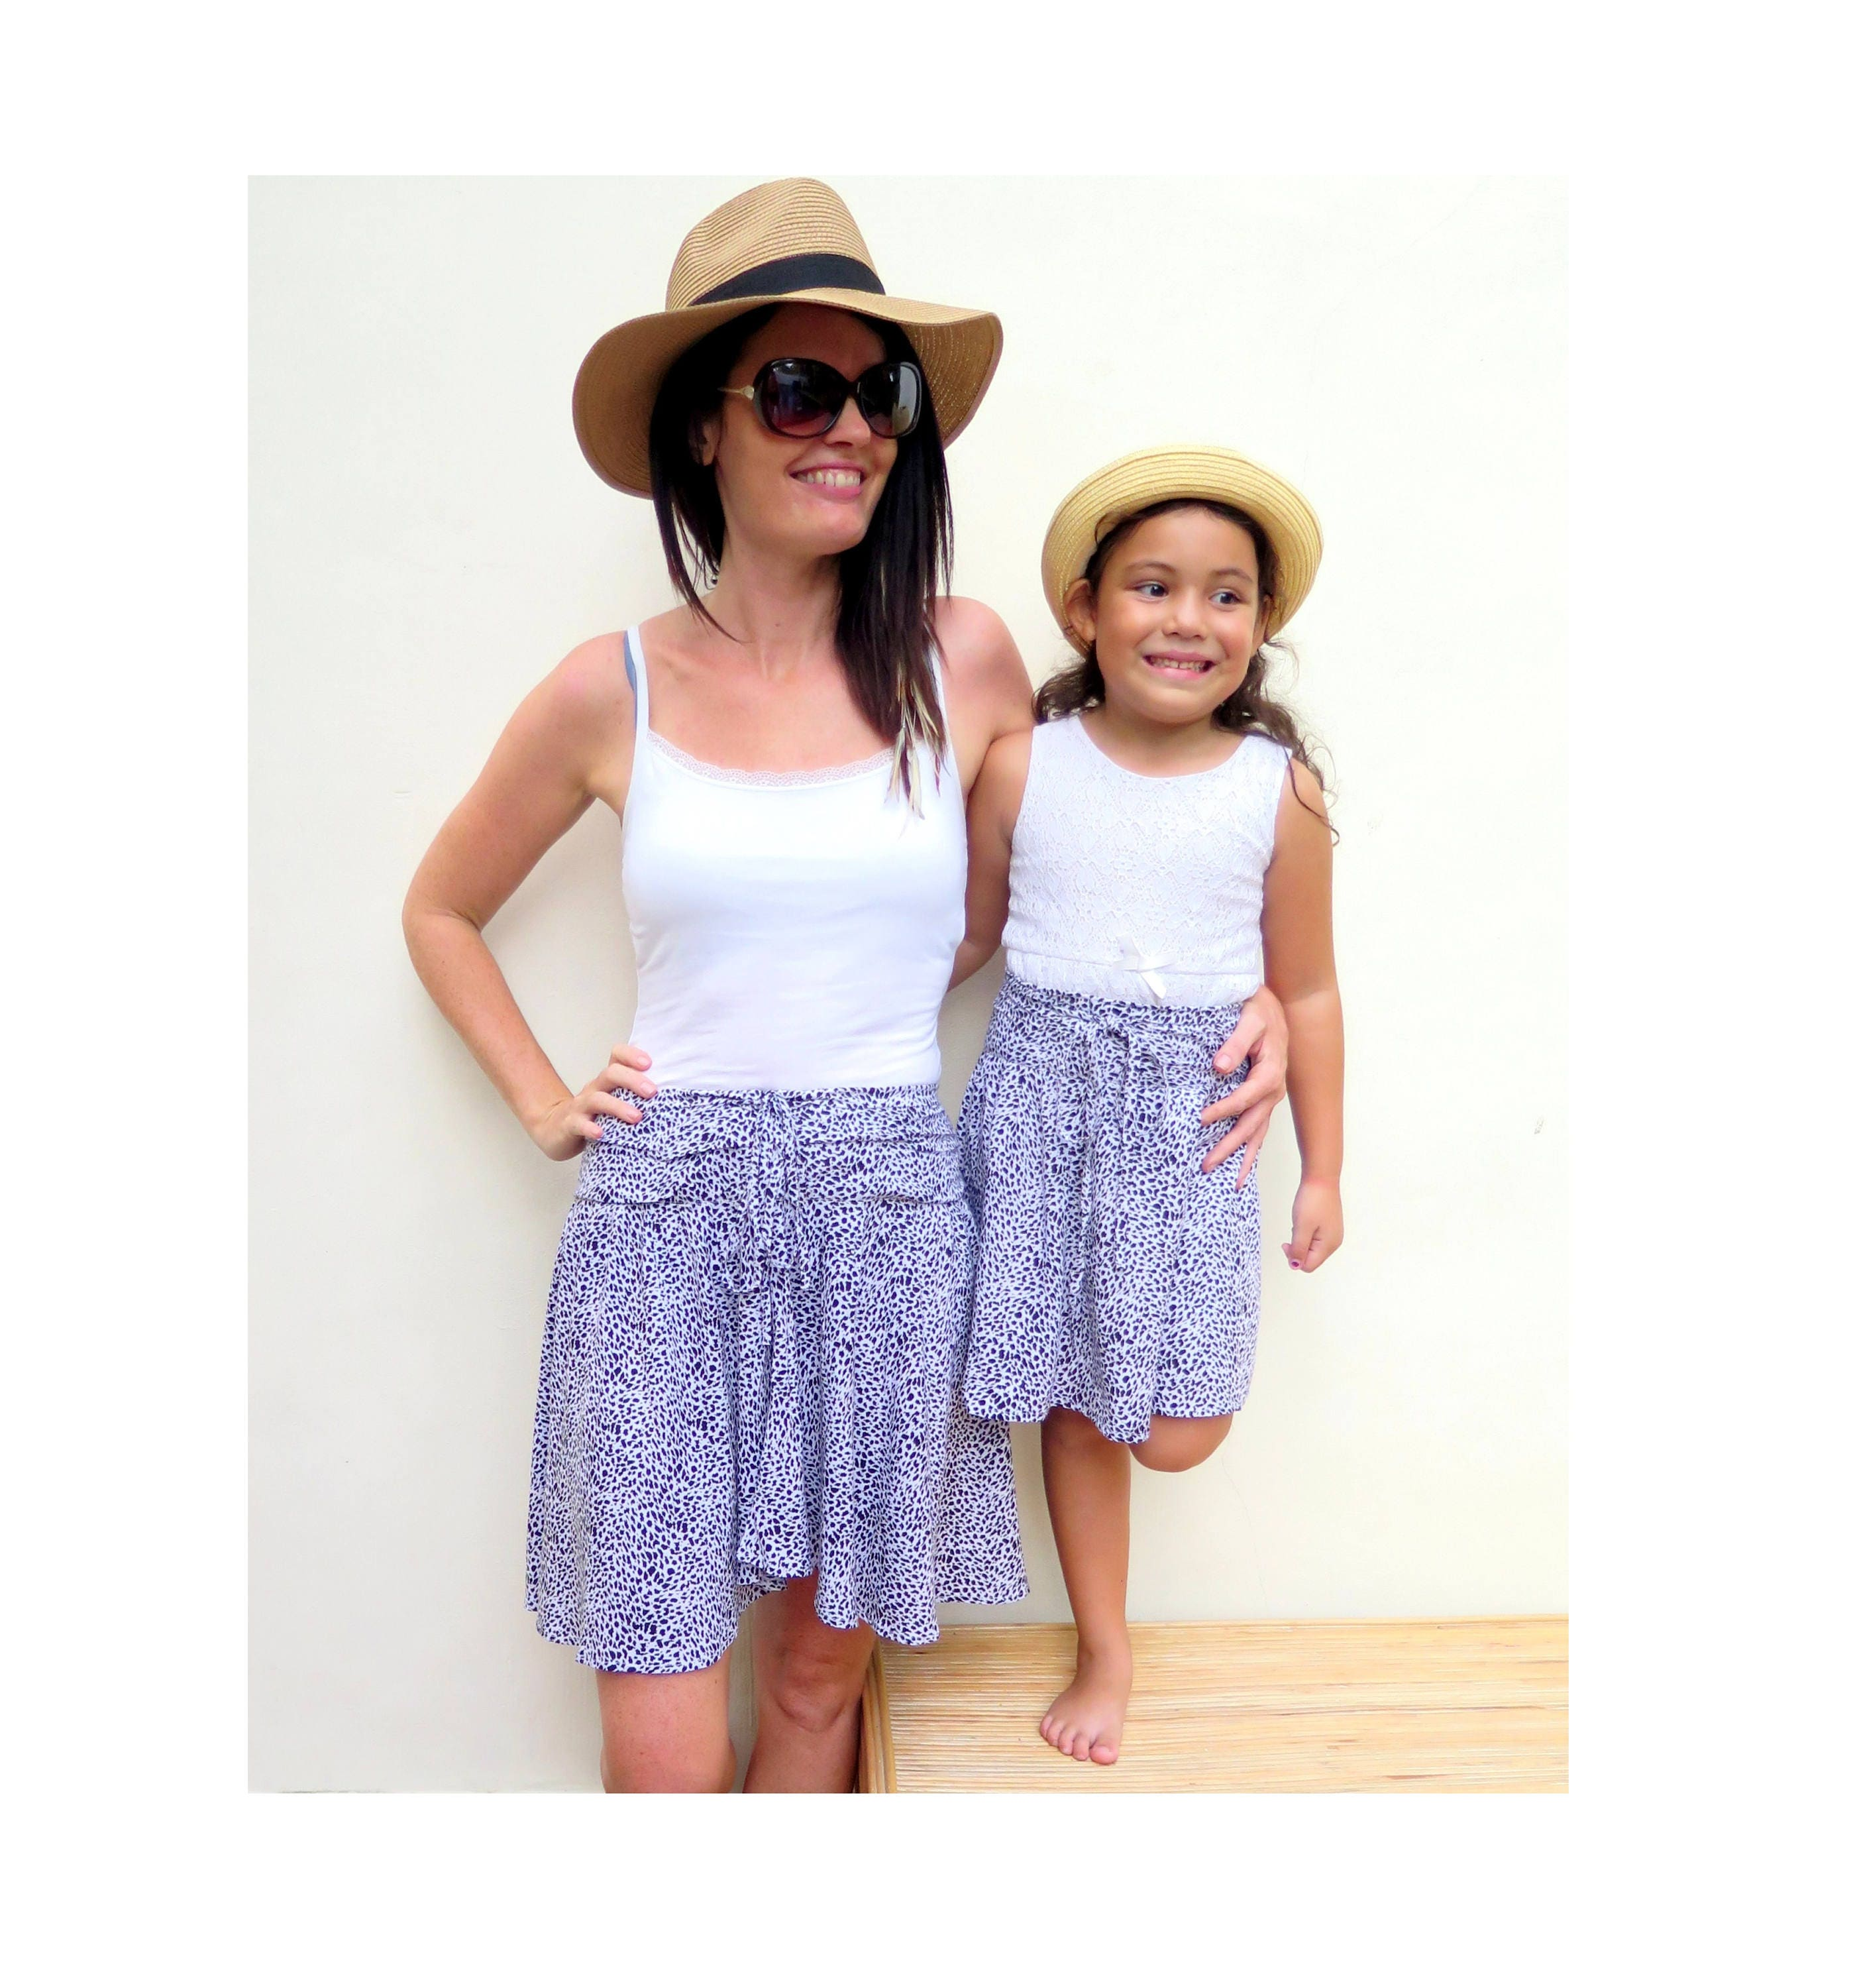 Mommy and me OutfitMatching mother daughter Outfitmom and